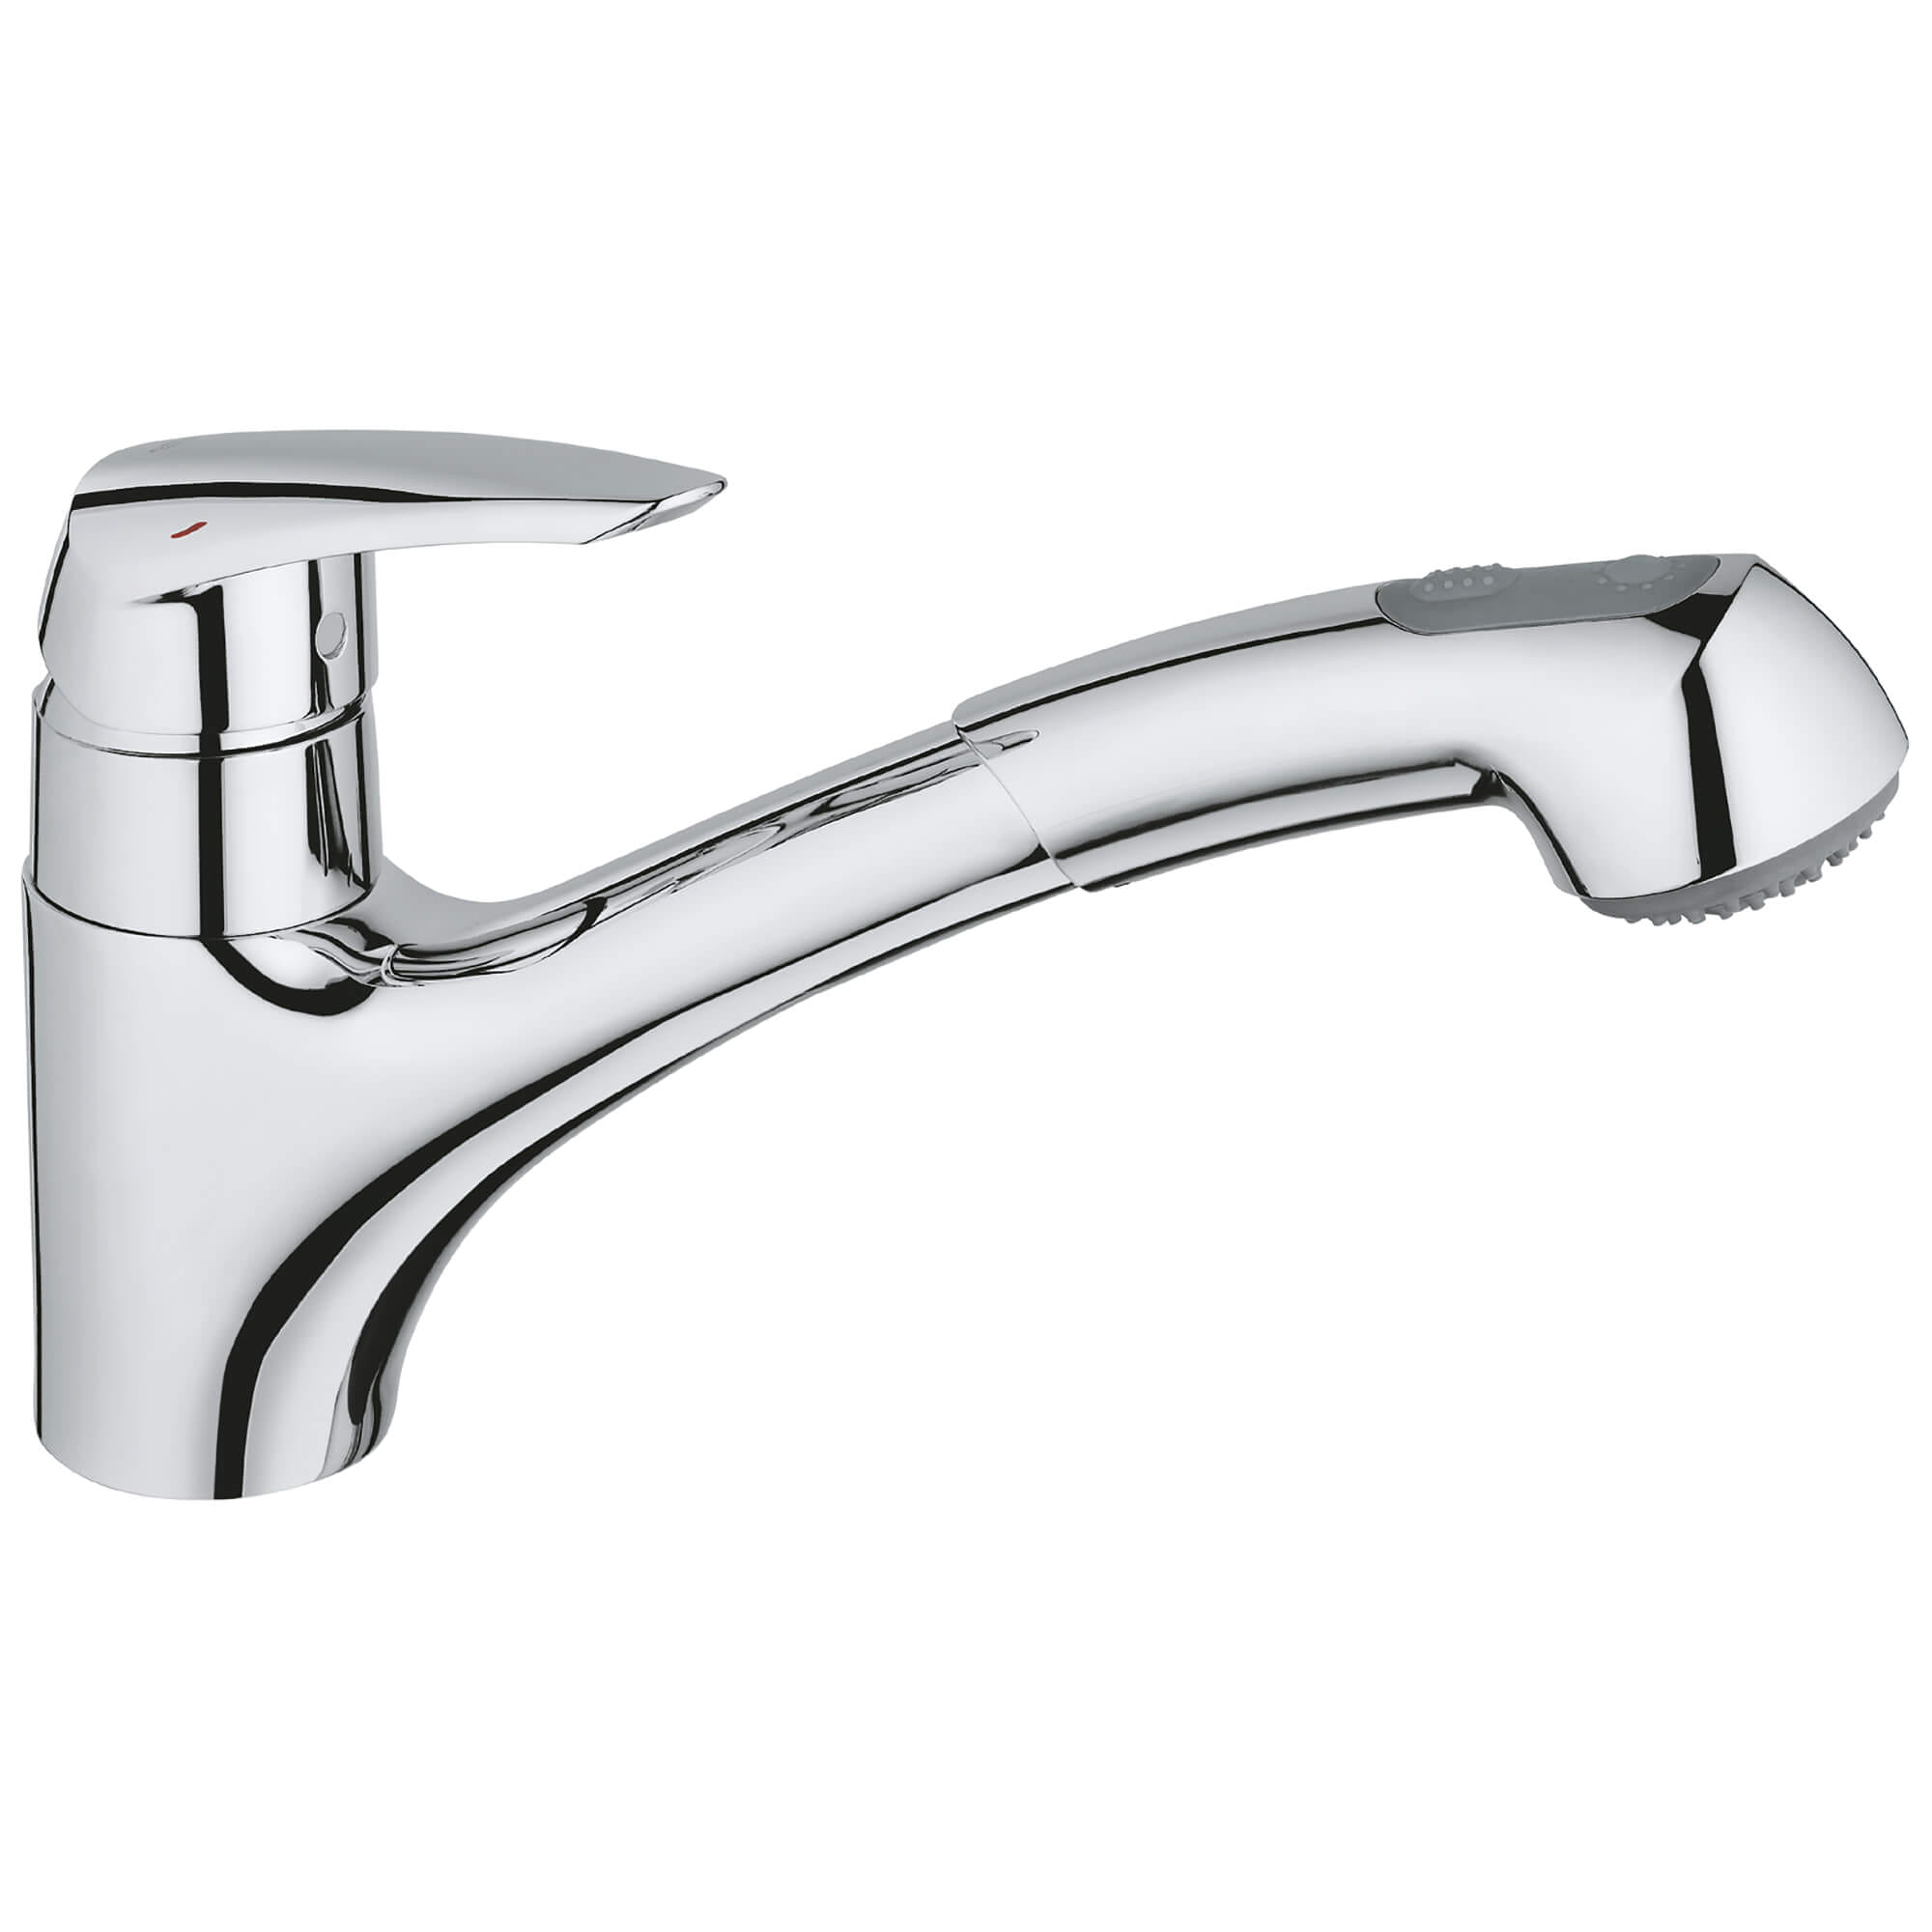 eurodisc single handle pull out kitchen faucet dual spray 1 75 gpm